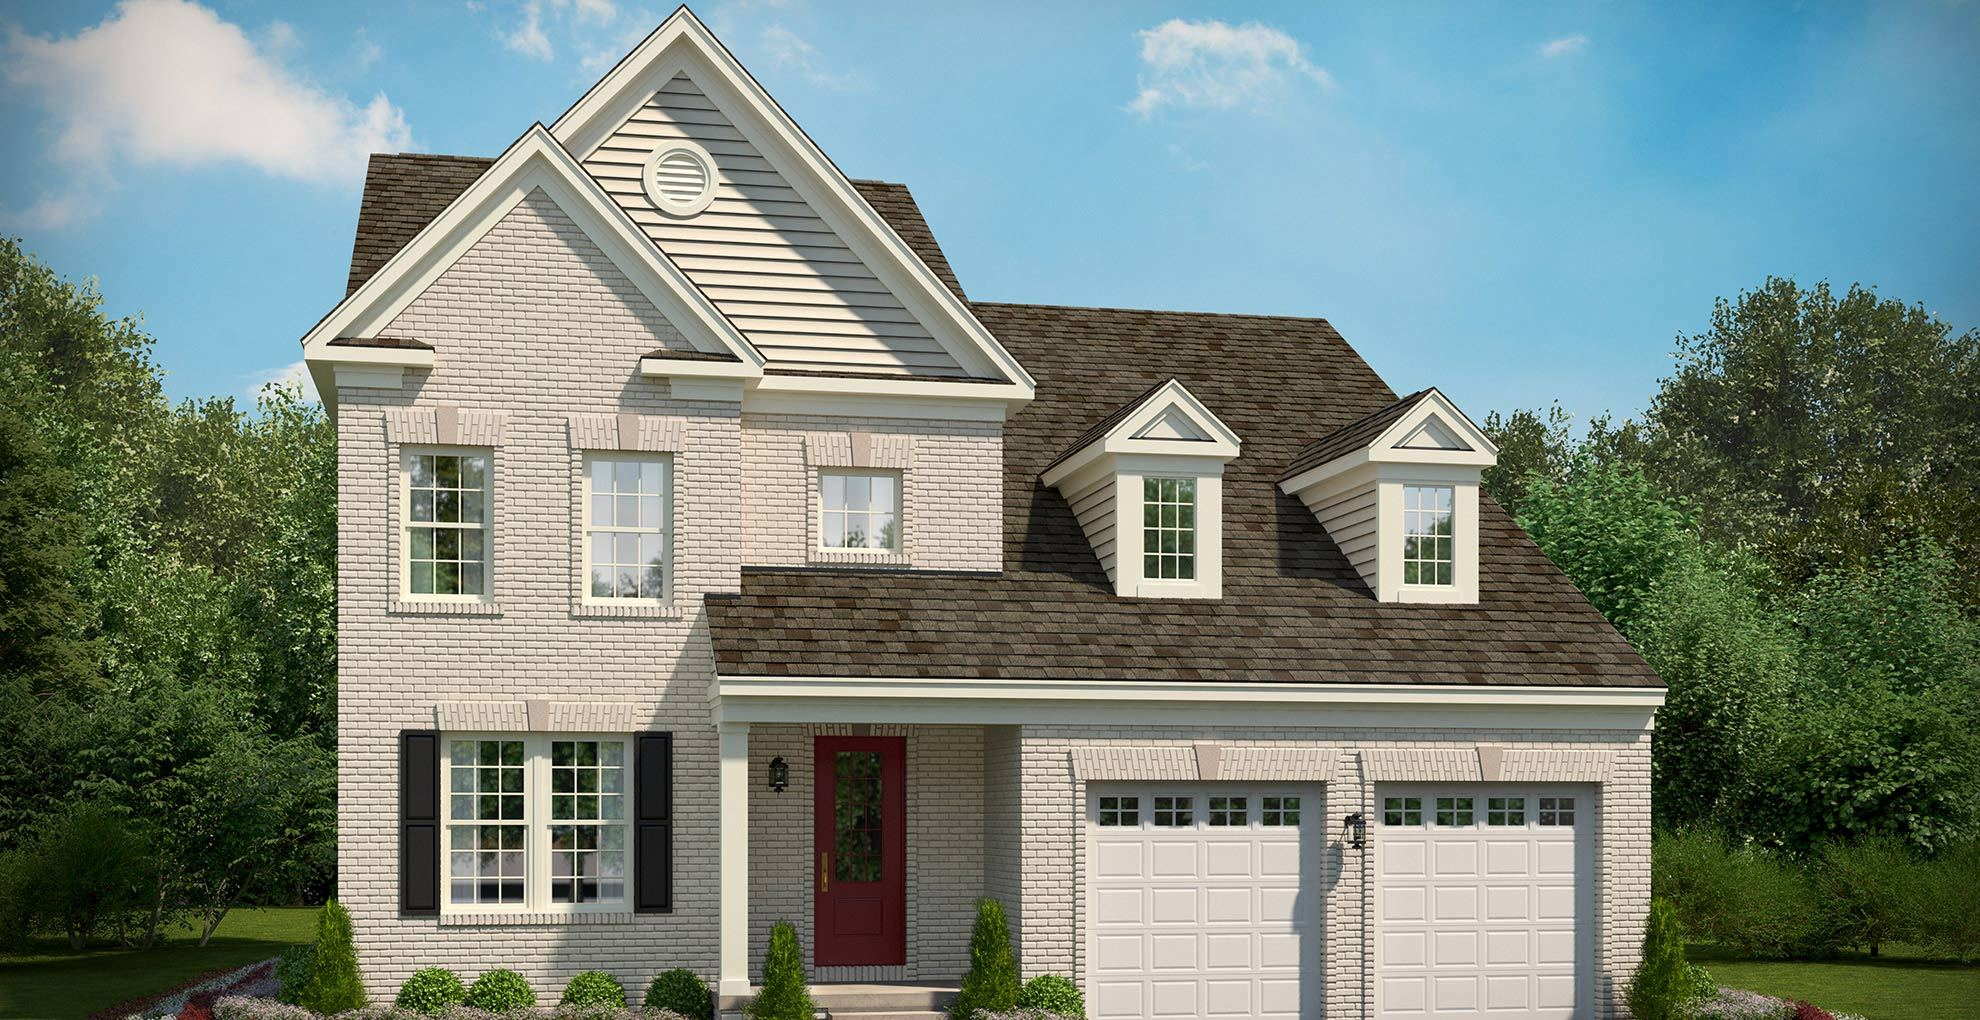 george county singles Zillow has 5756 homes for sale in prince georges county md view listing  photos, review sales  ravenna plan, beechtree singles ryan homes open:  mon.